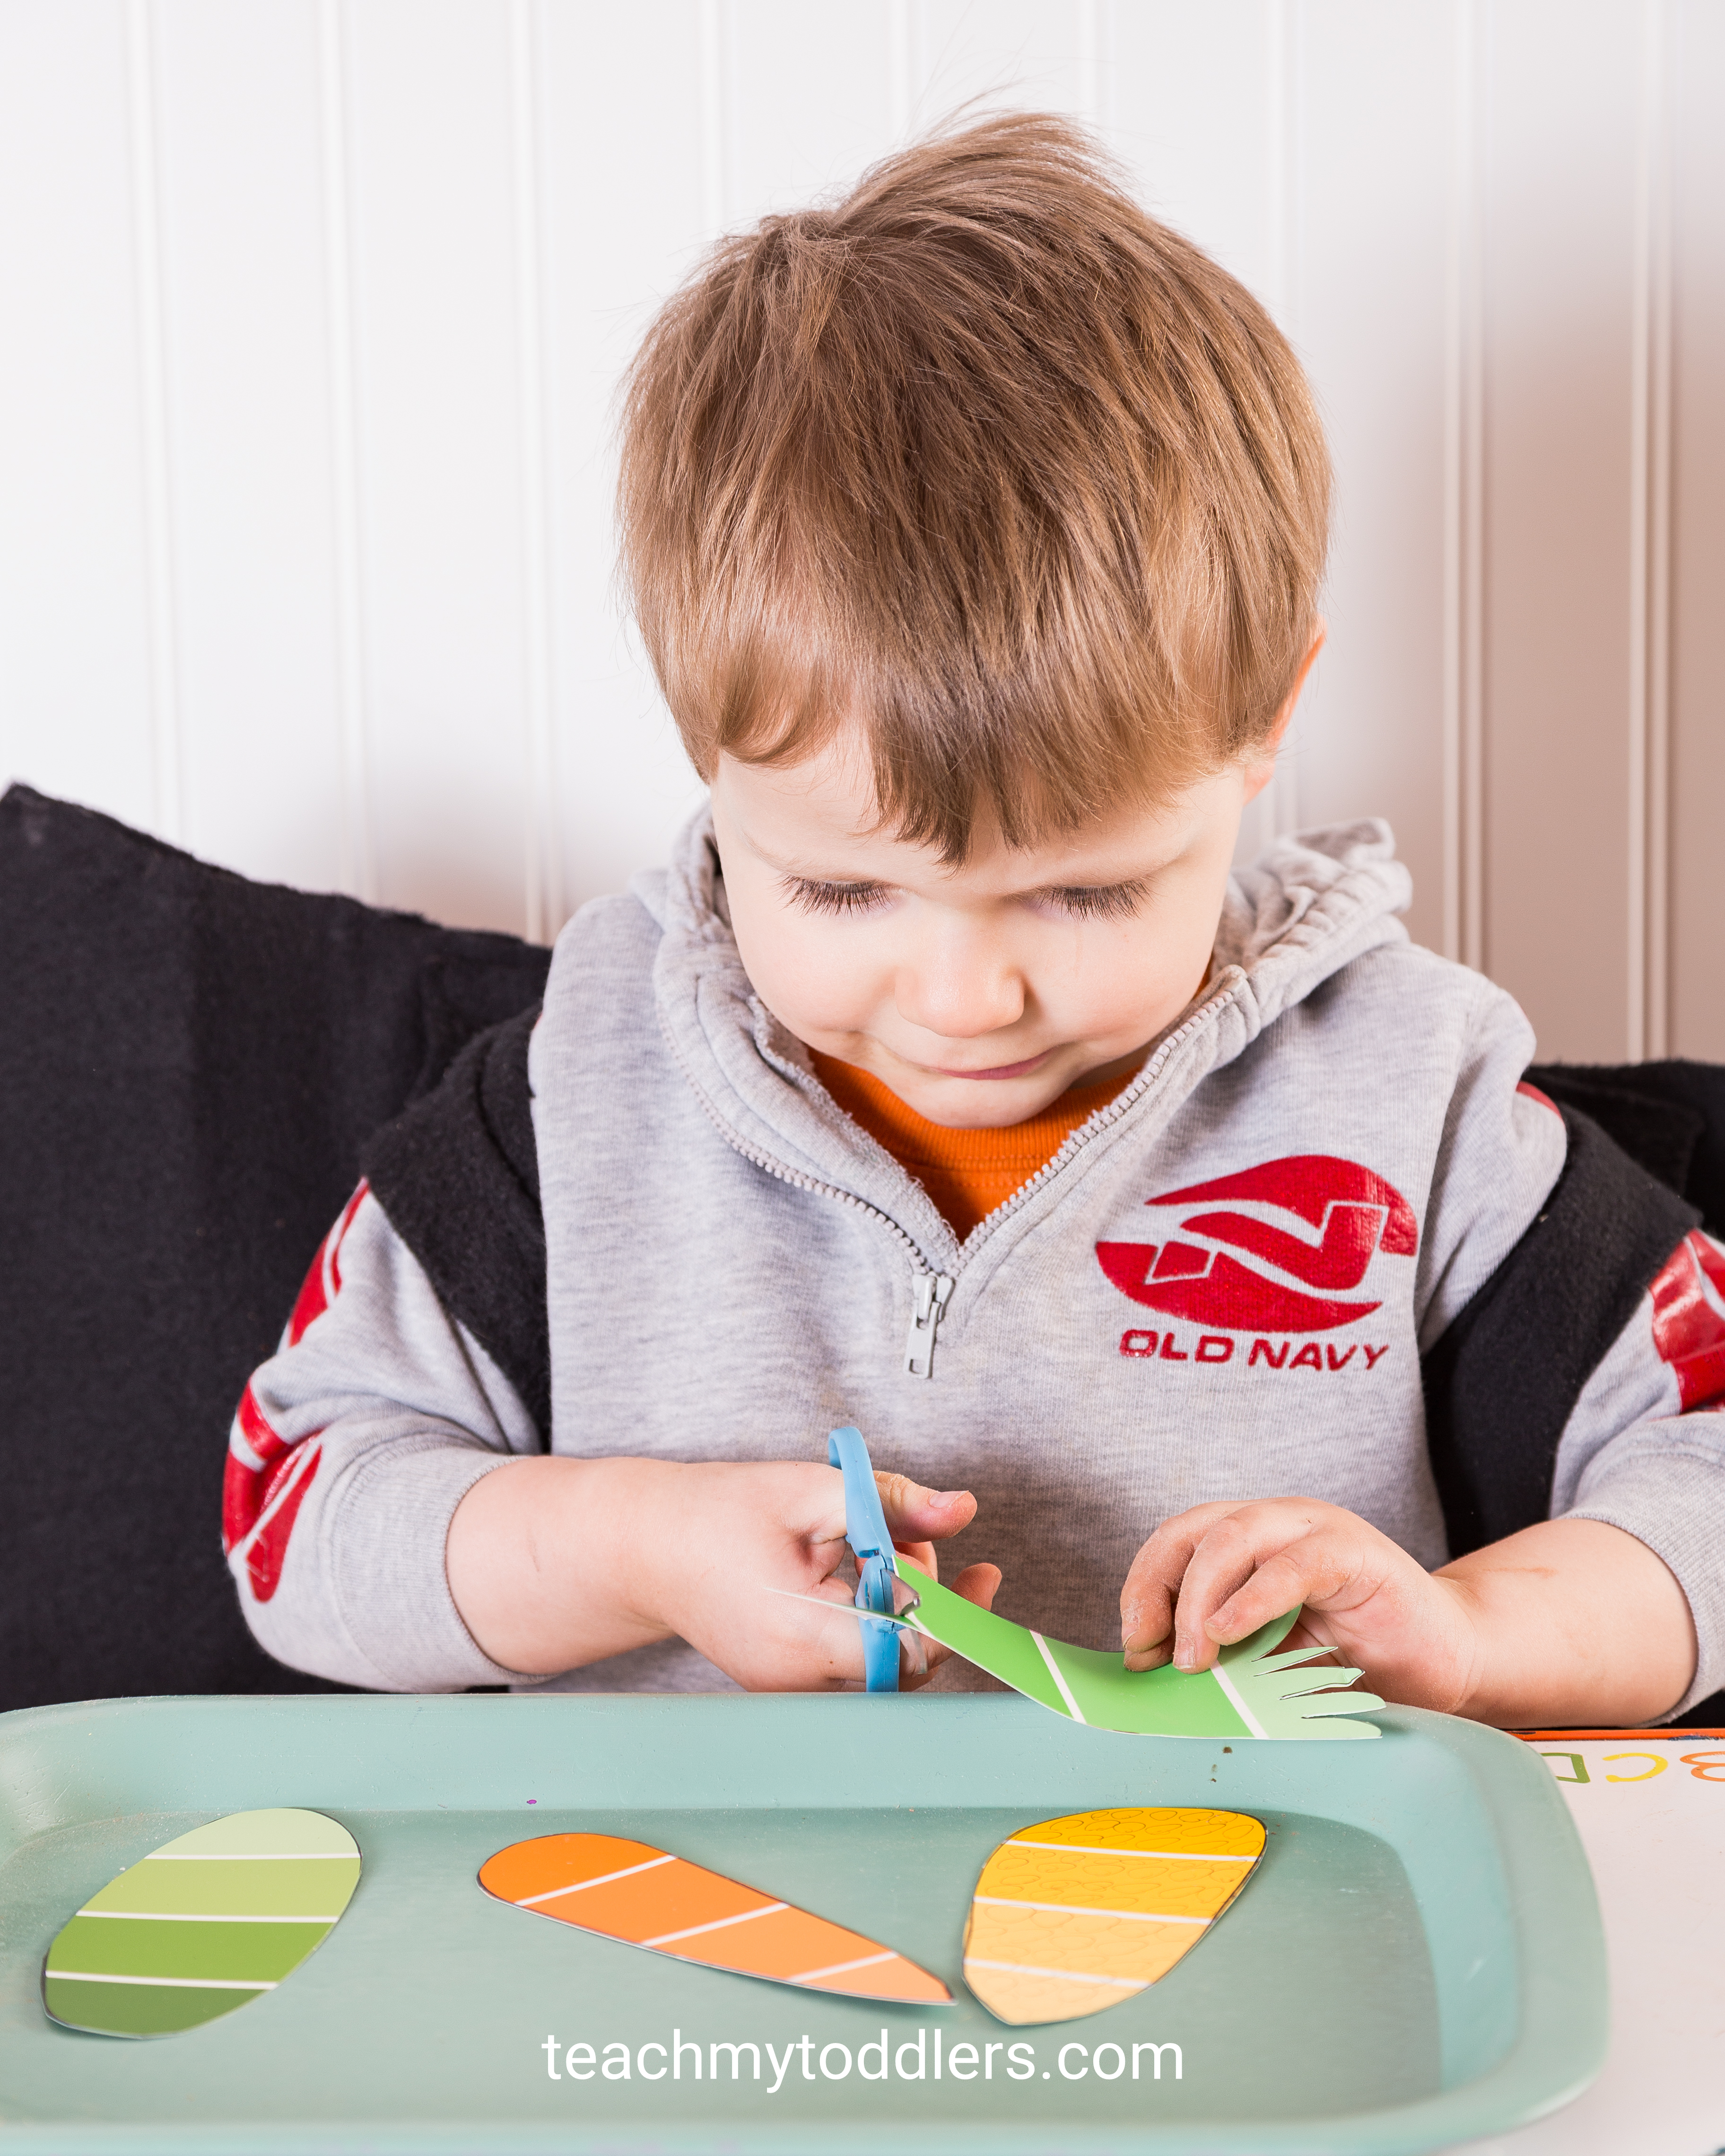 Use these exciting g is for garden activities to teach toddlers the letter g